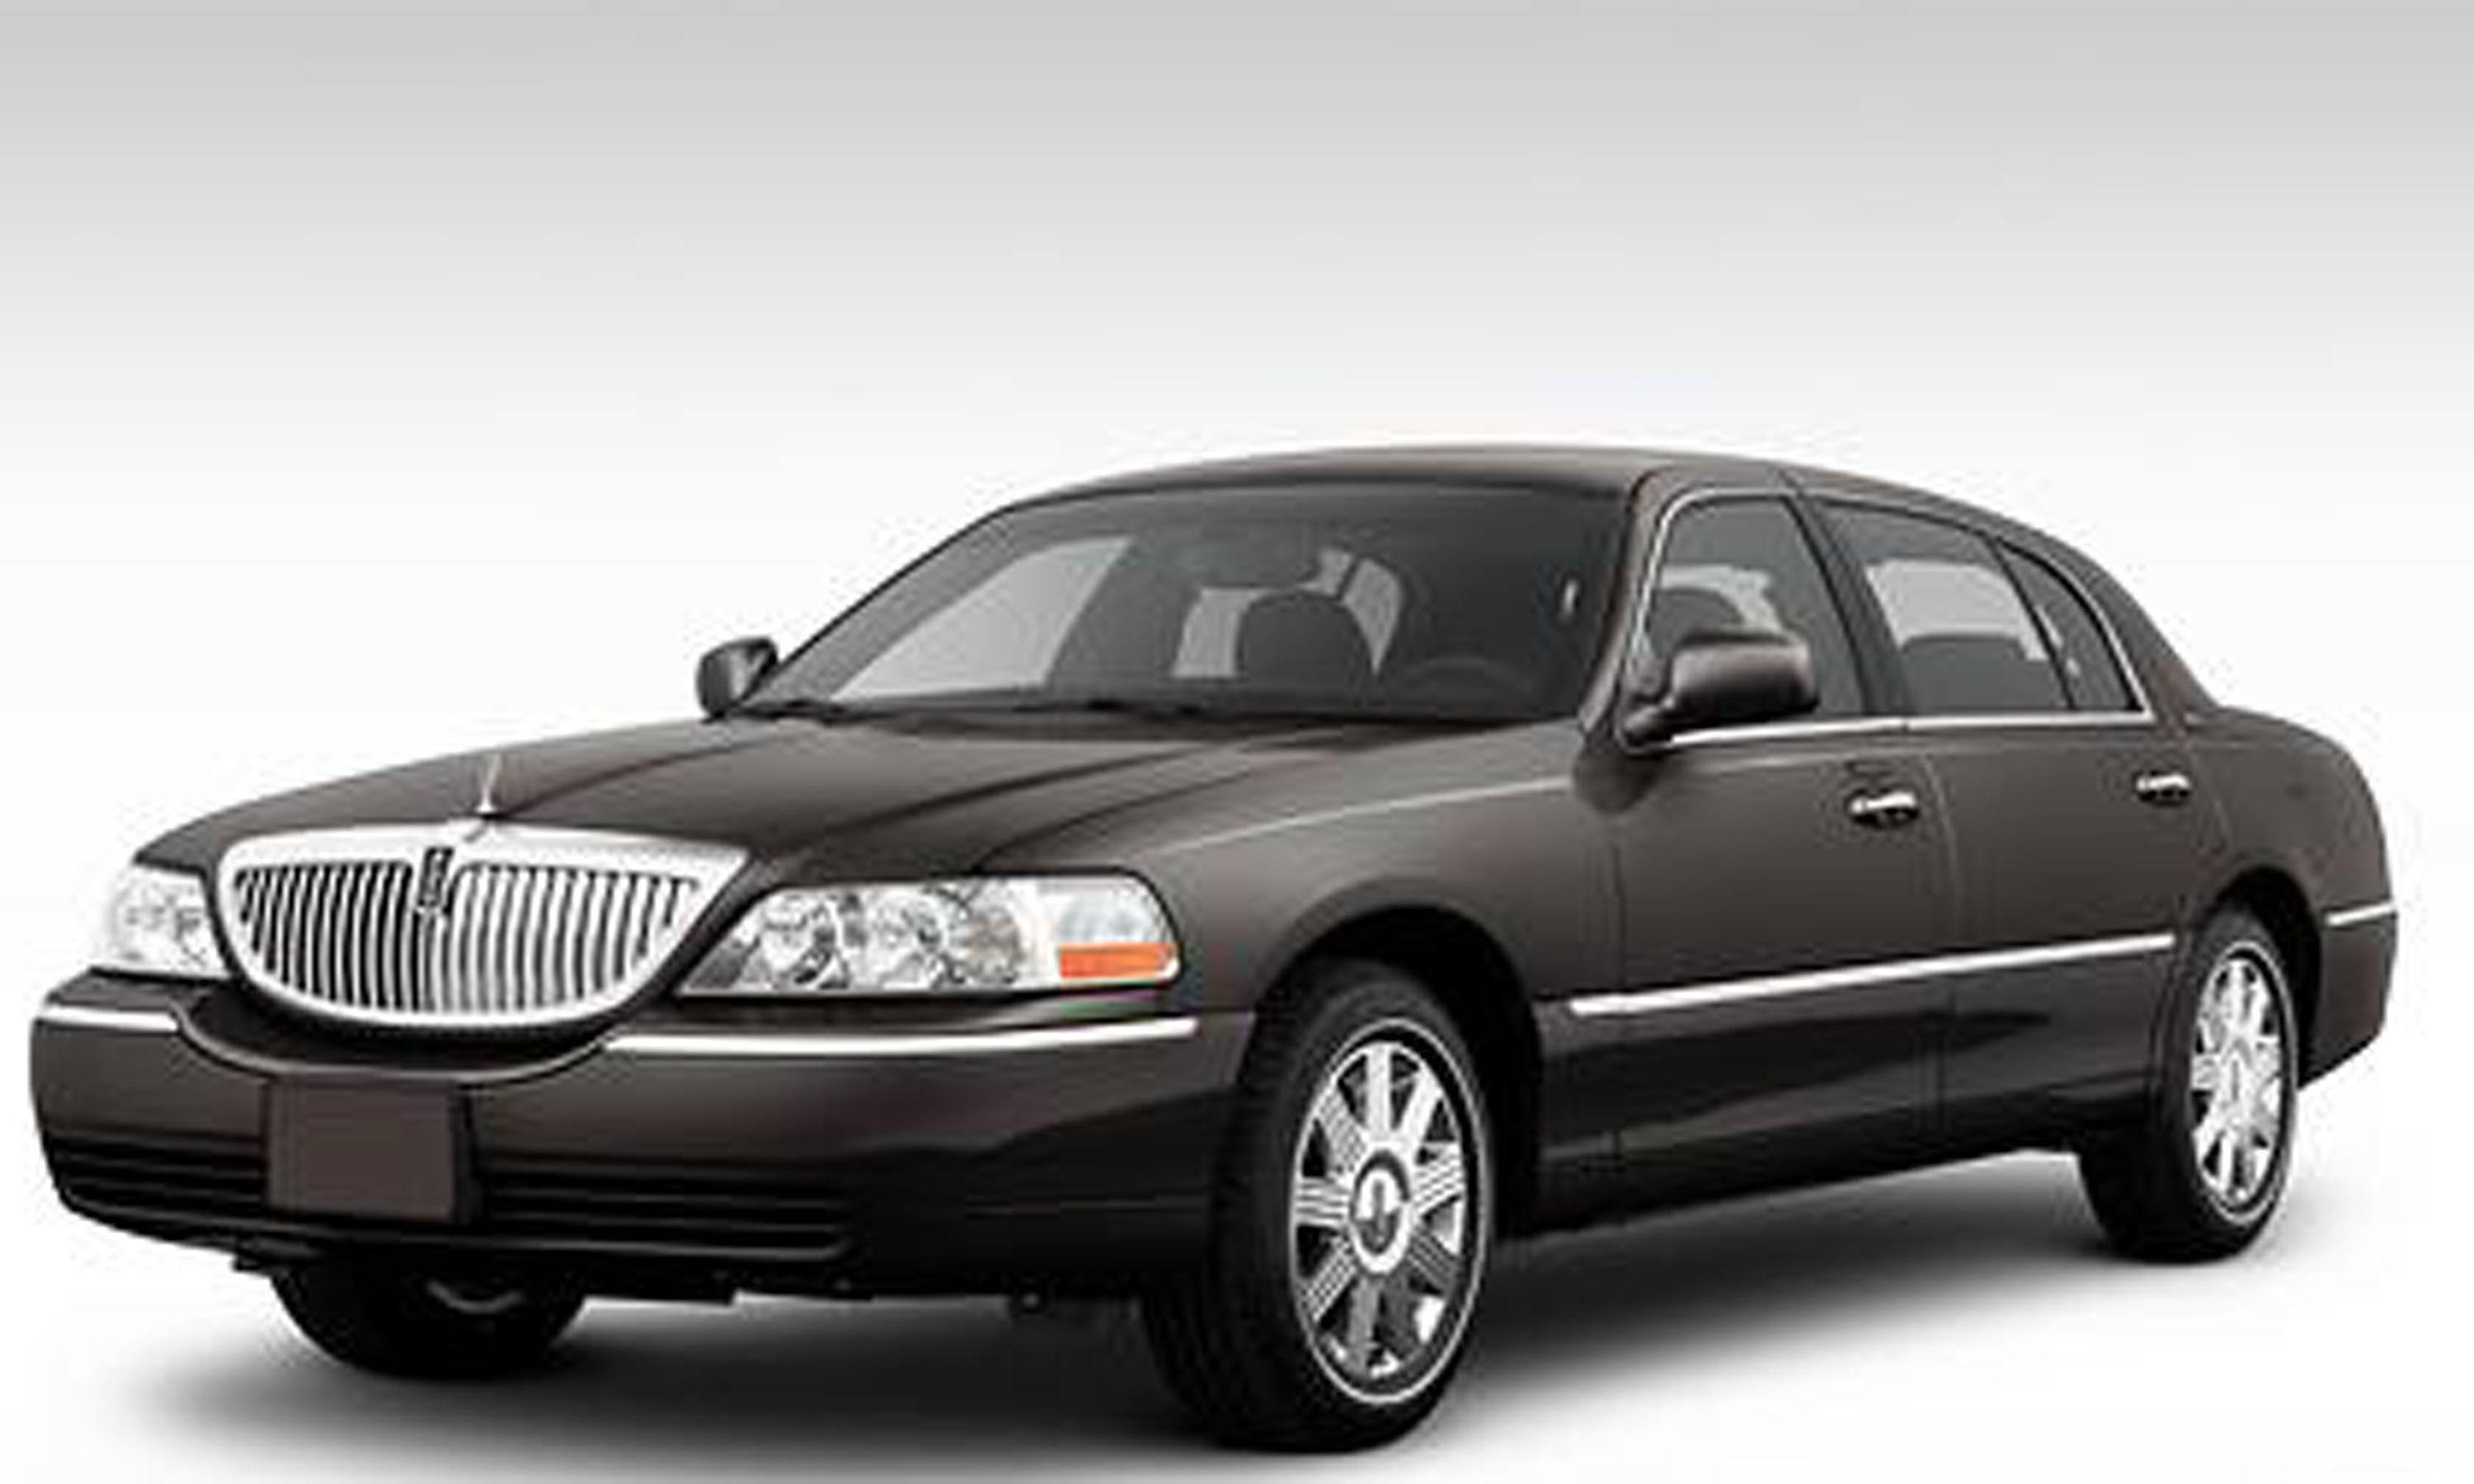 2011 Lincoln Town Car Image 15